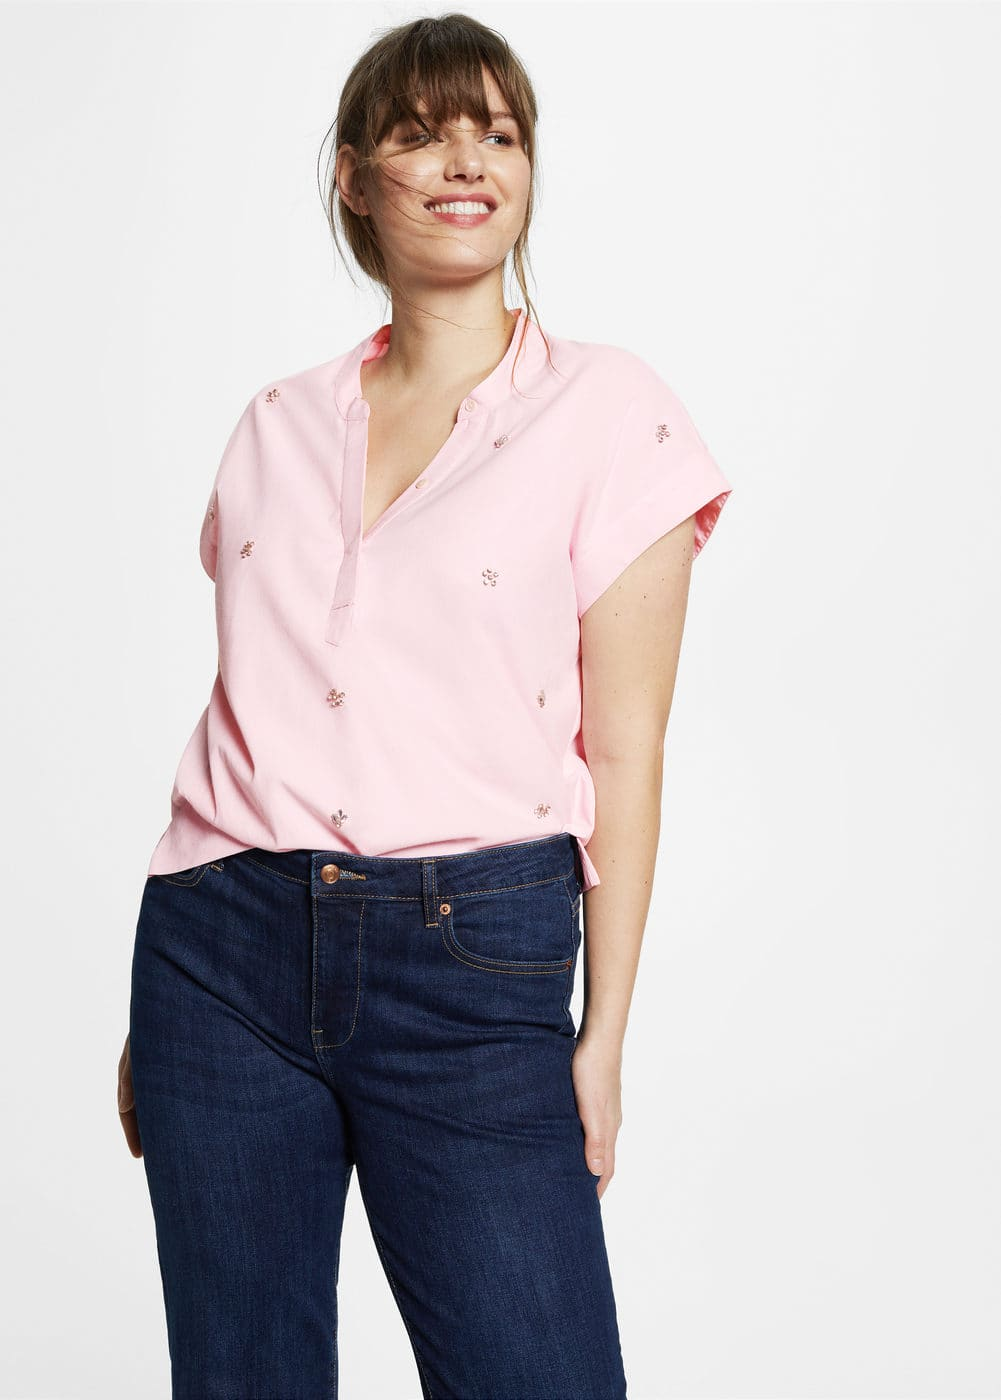 Glossed-effect appliqué blouse | VIOLETA BY MNG